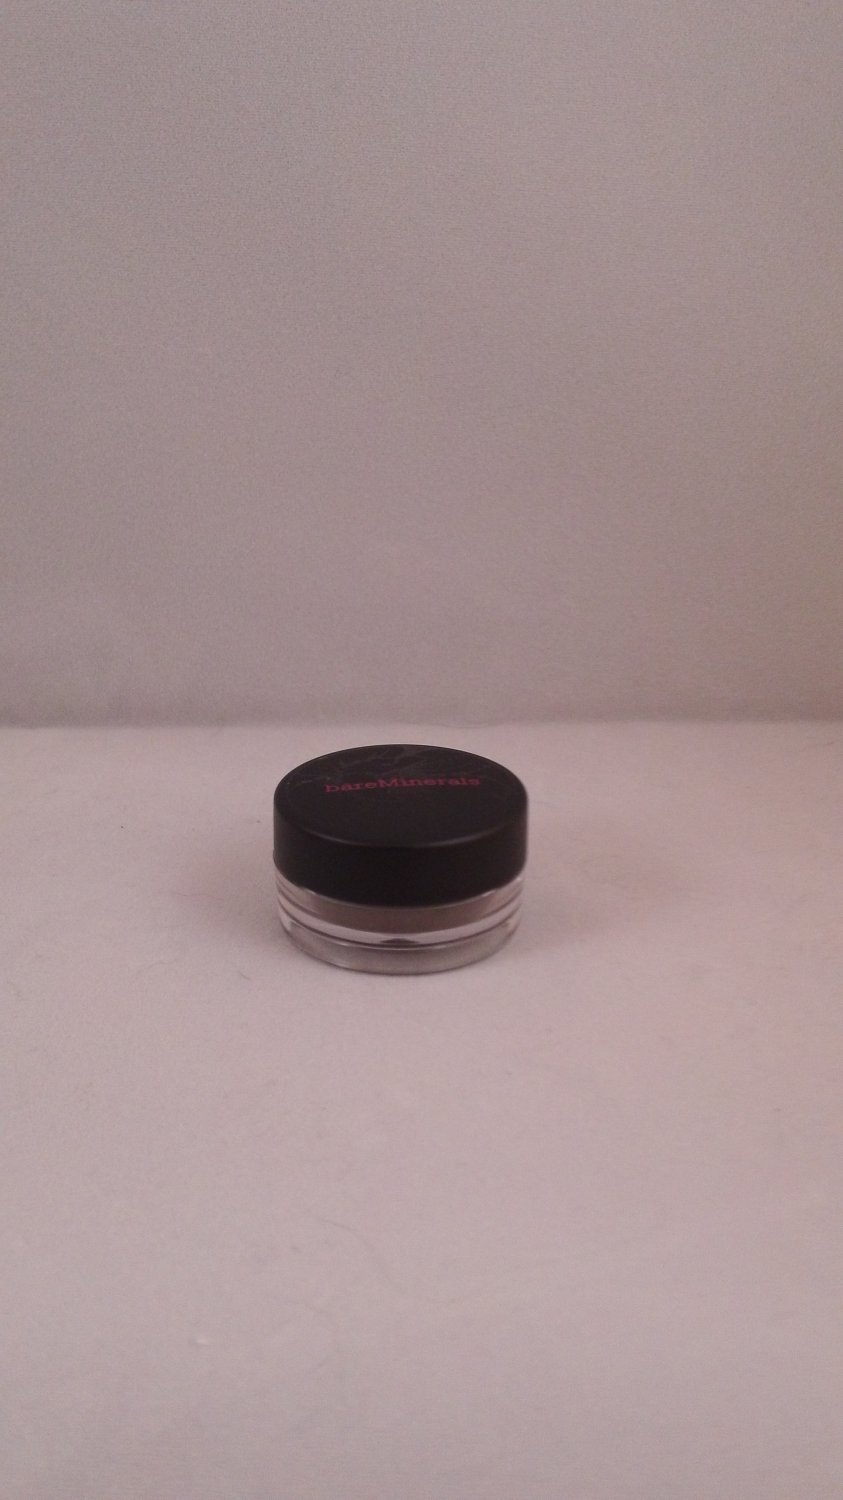 Bare Escentuals bareMinerals Eyecolor Minerals Eye Shadow Magnifique Limited Edition